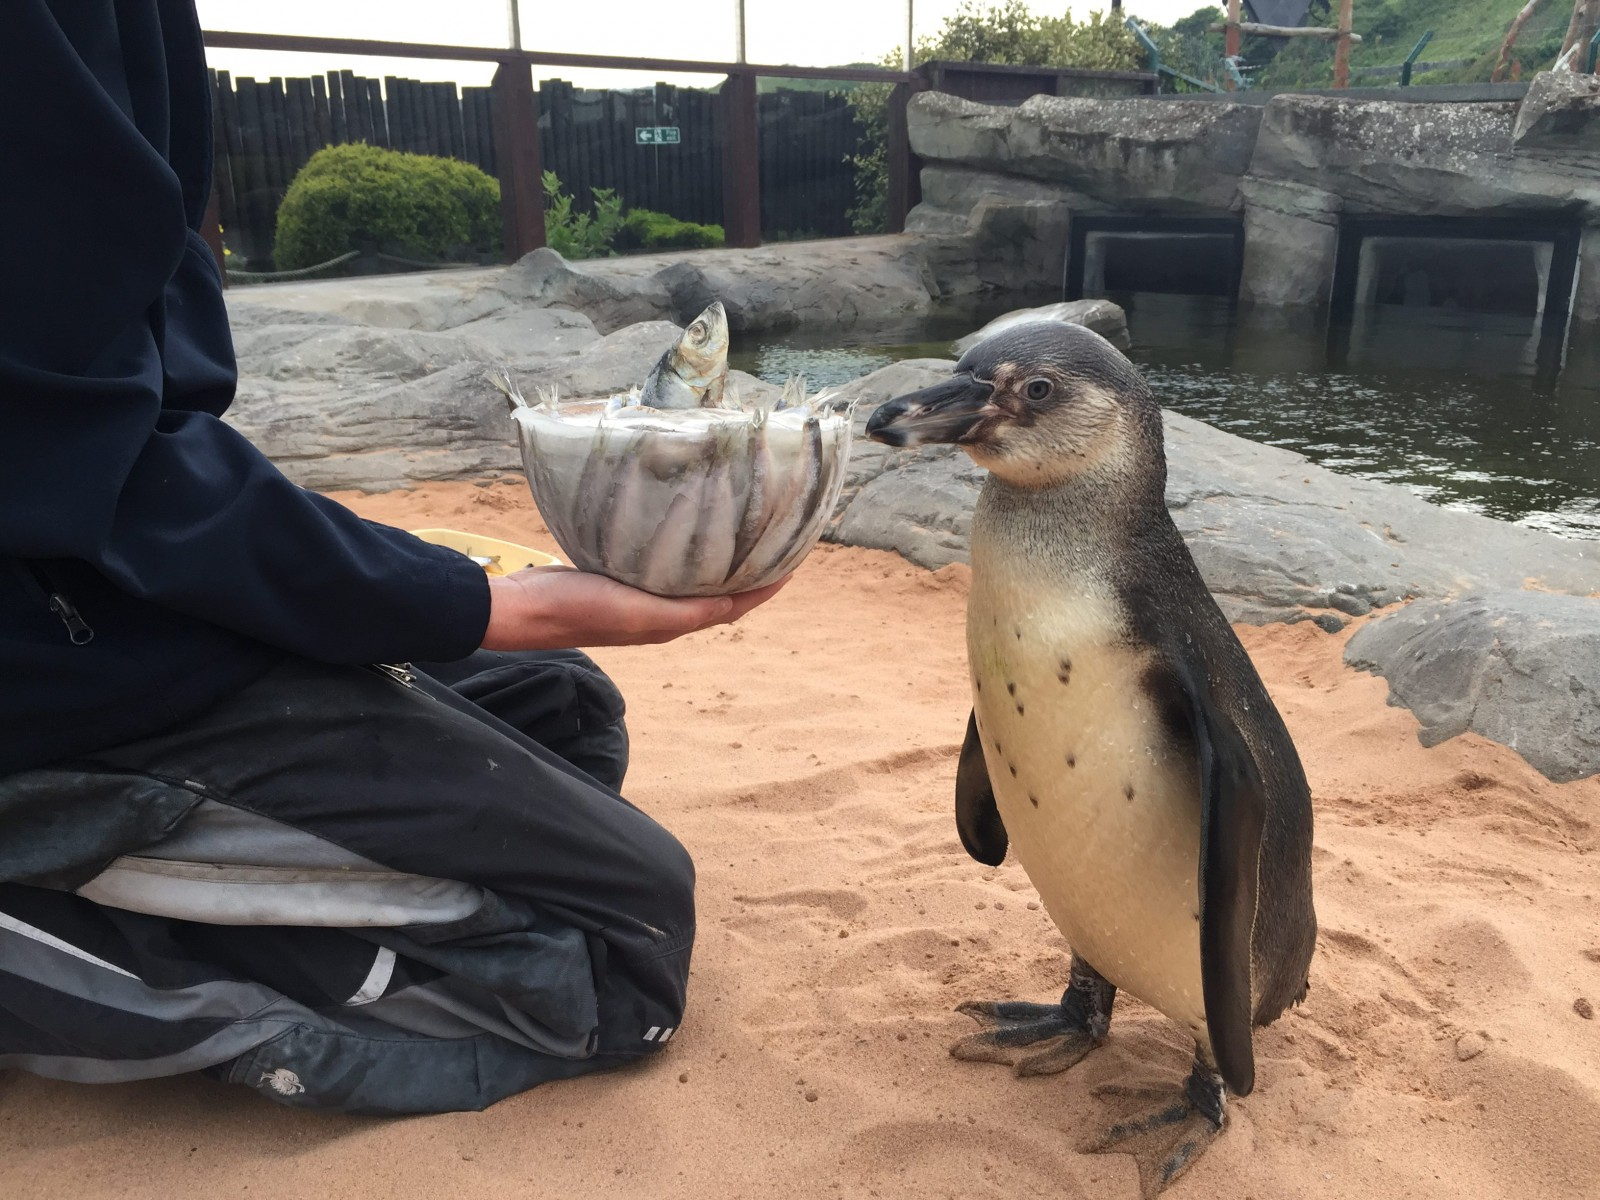 Penguin celebrates birthday with happy feet thanks to wearing elastic PANTS